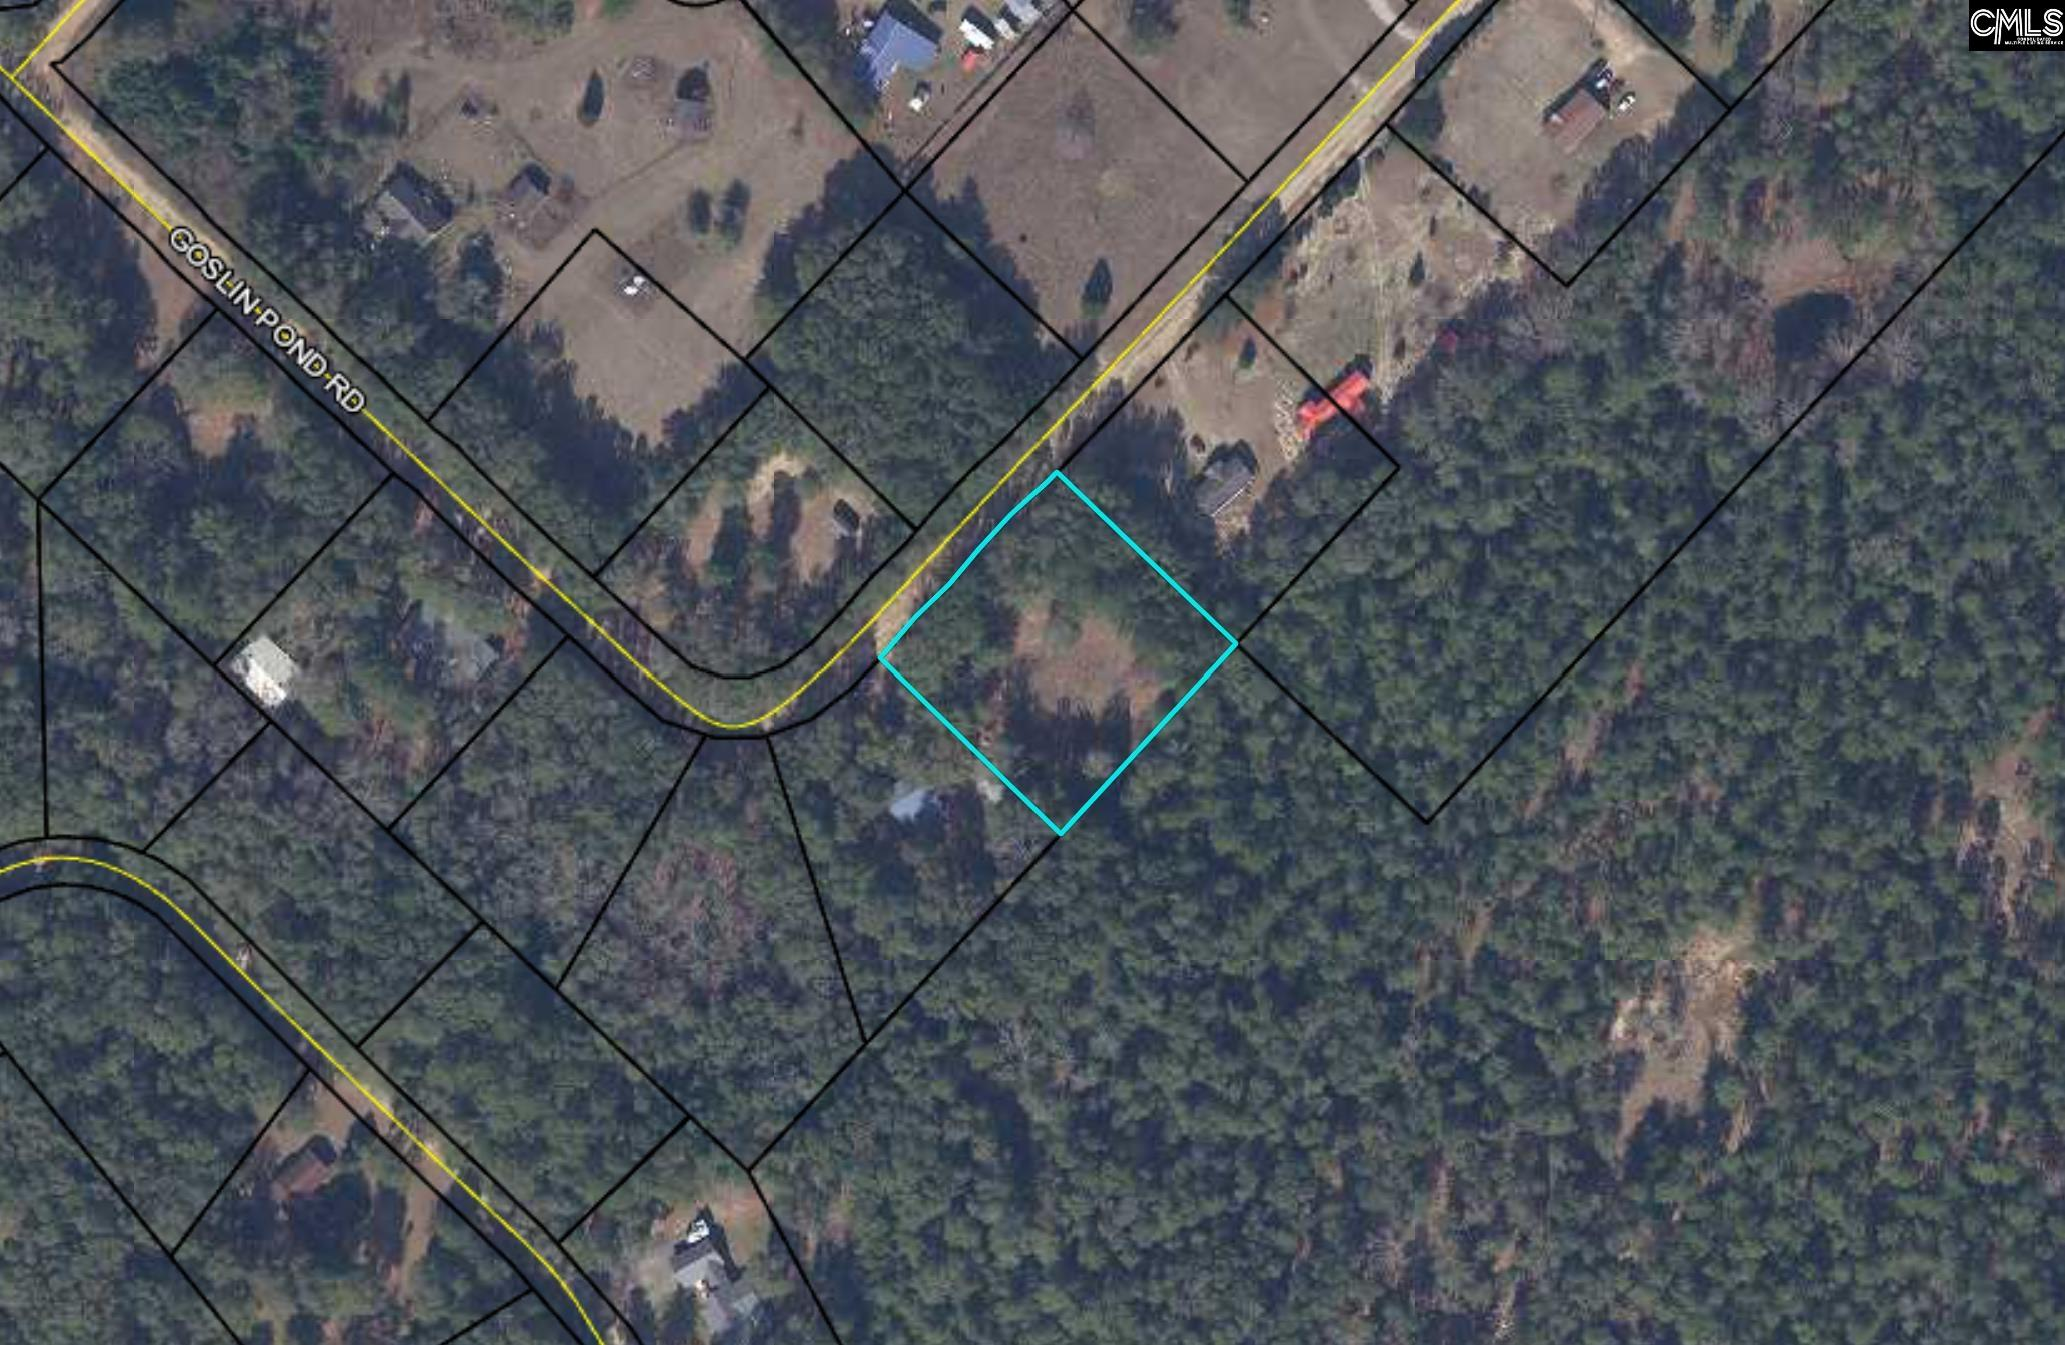 +/- 1 acre lot close to I-95. Adjacent lot and mobile home is also for sale.